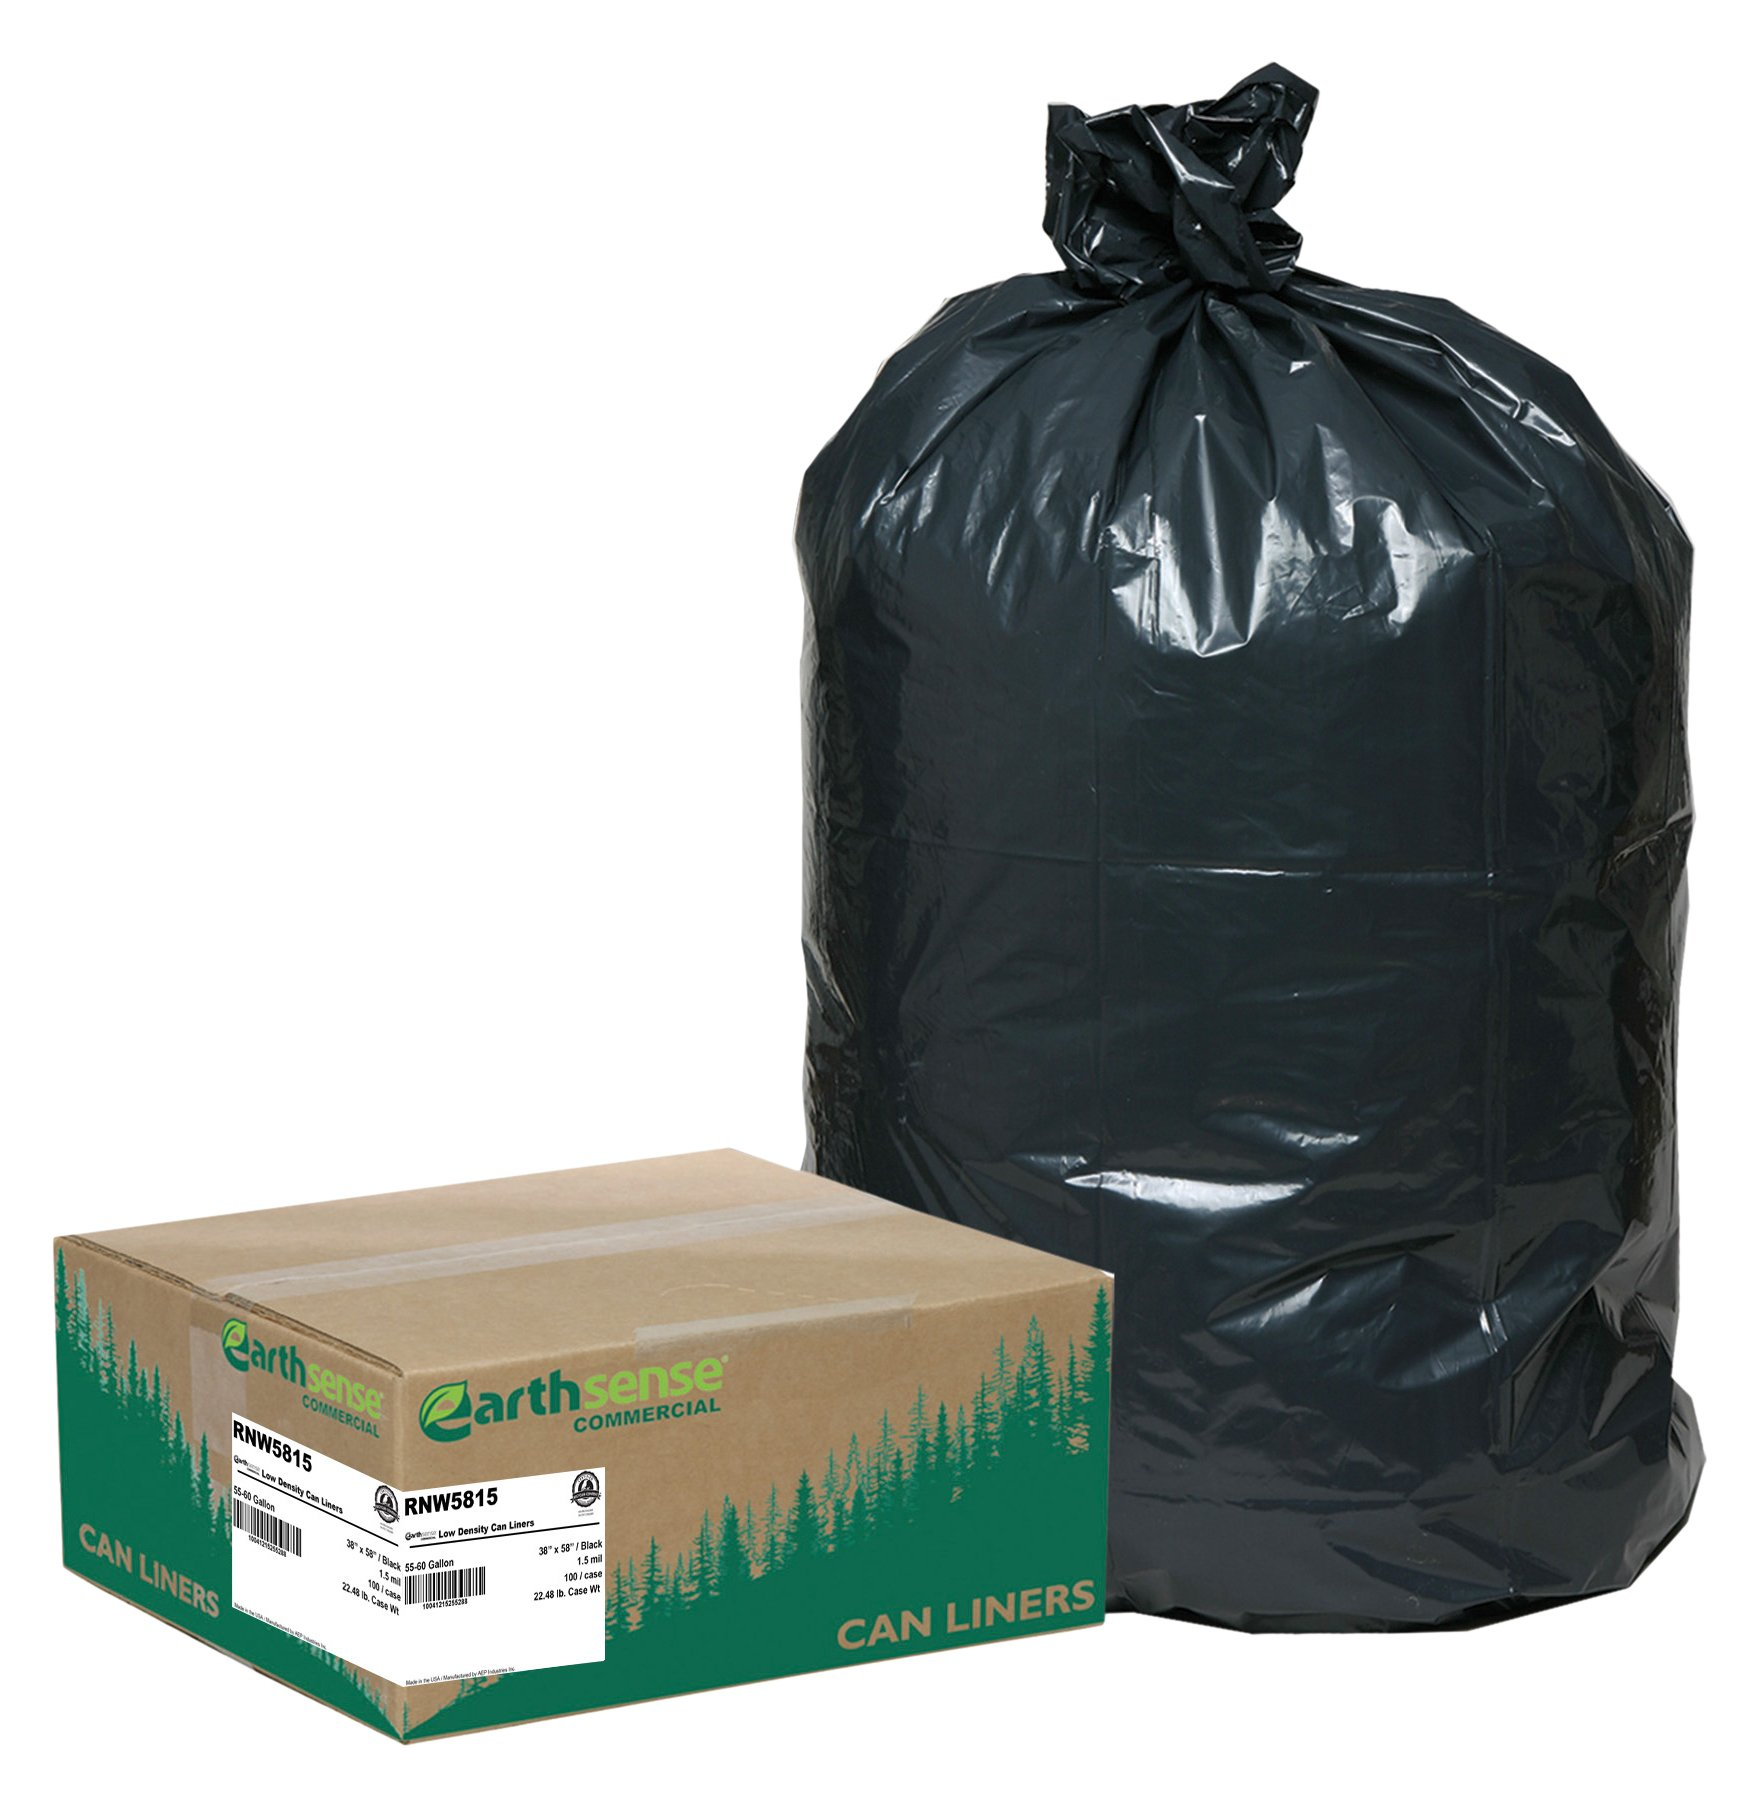 Earthsense Commercial RNW5815 Can Liner, 38 x 58, 55-60 gal, 1.5 mil, Polyethylene, Black (Pack of 100) by Earthsense Commercial